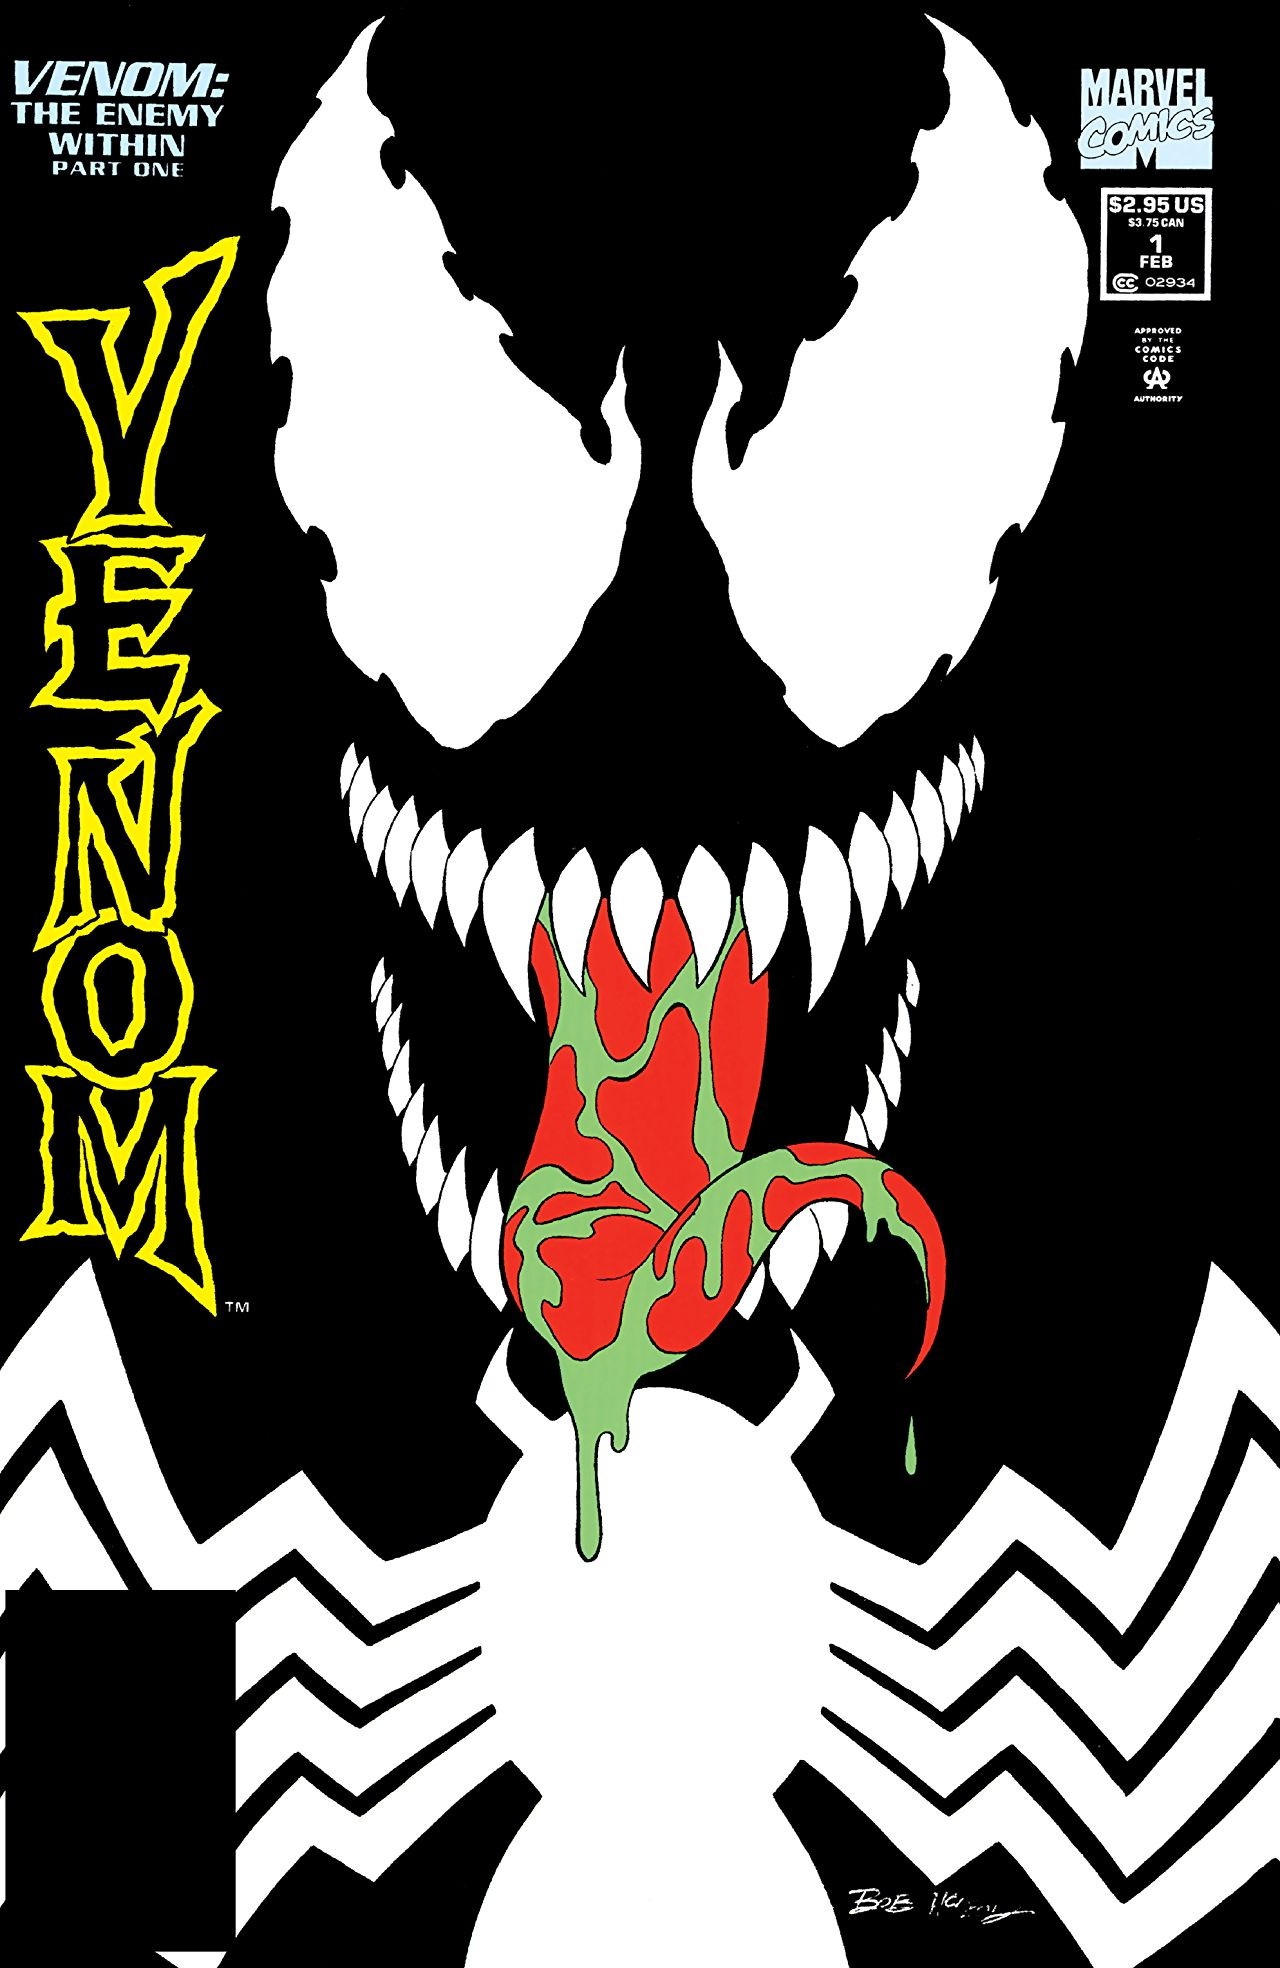 Venom: Enemy Within Vol 1 1